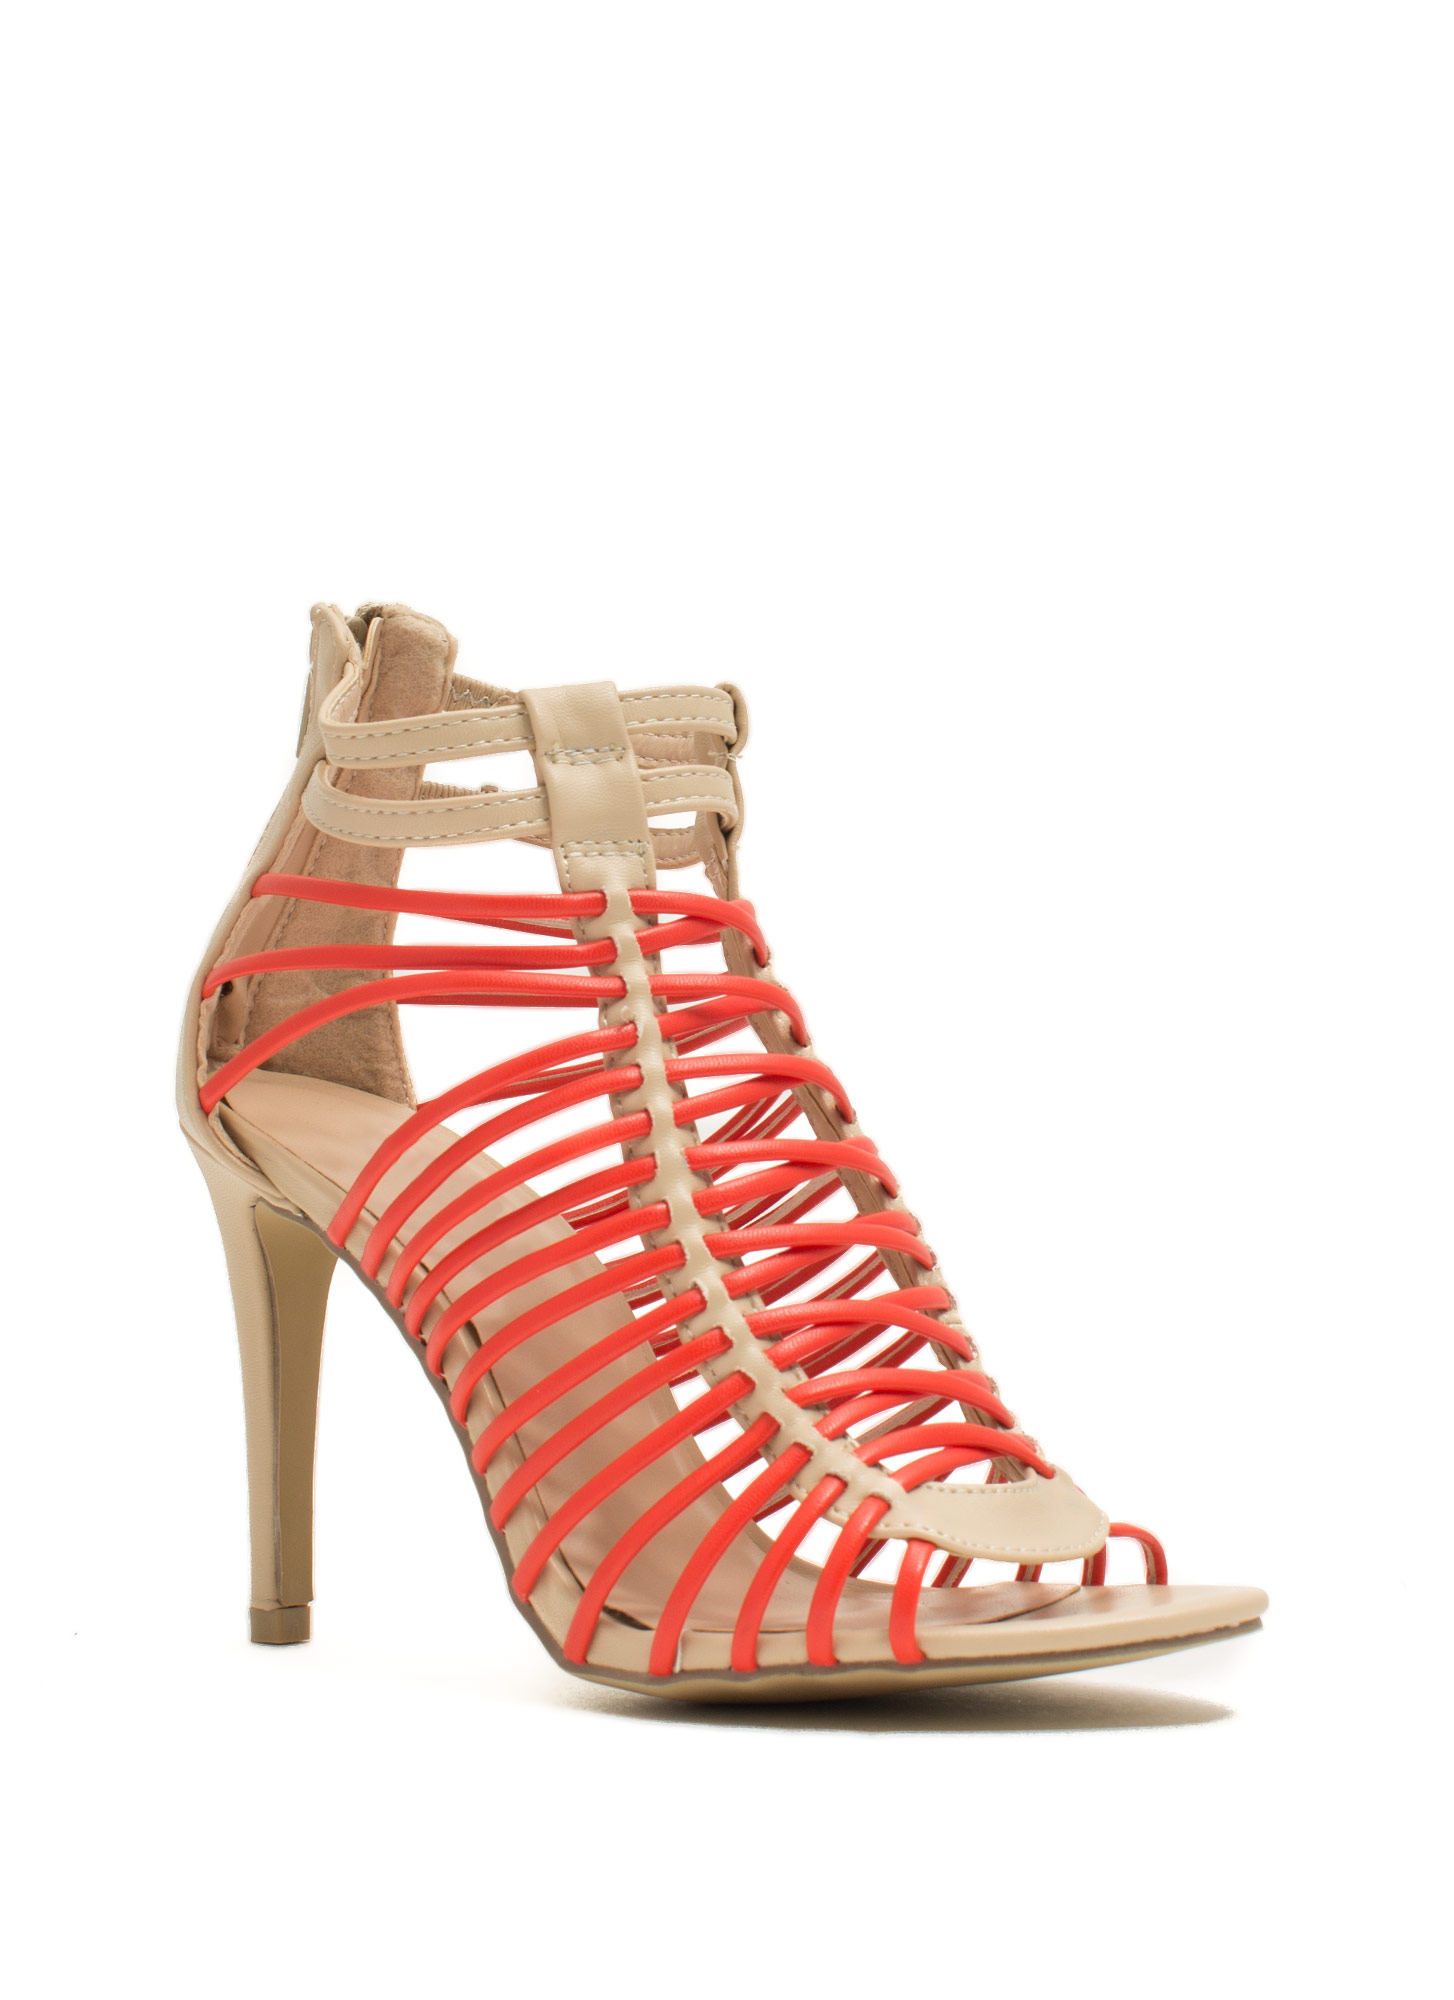 Crisscrossed Strappy Caged Heels BEIGEORG  (Final Sale)